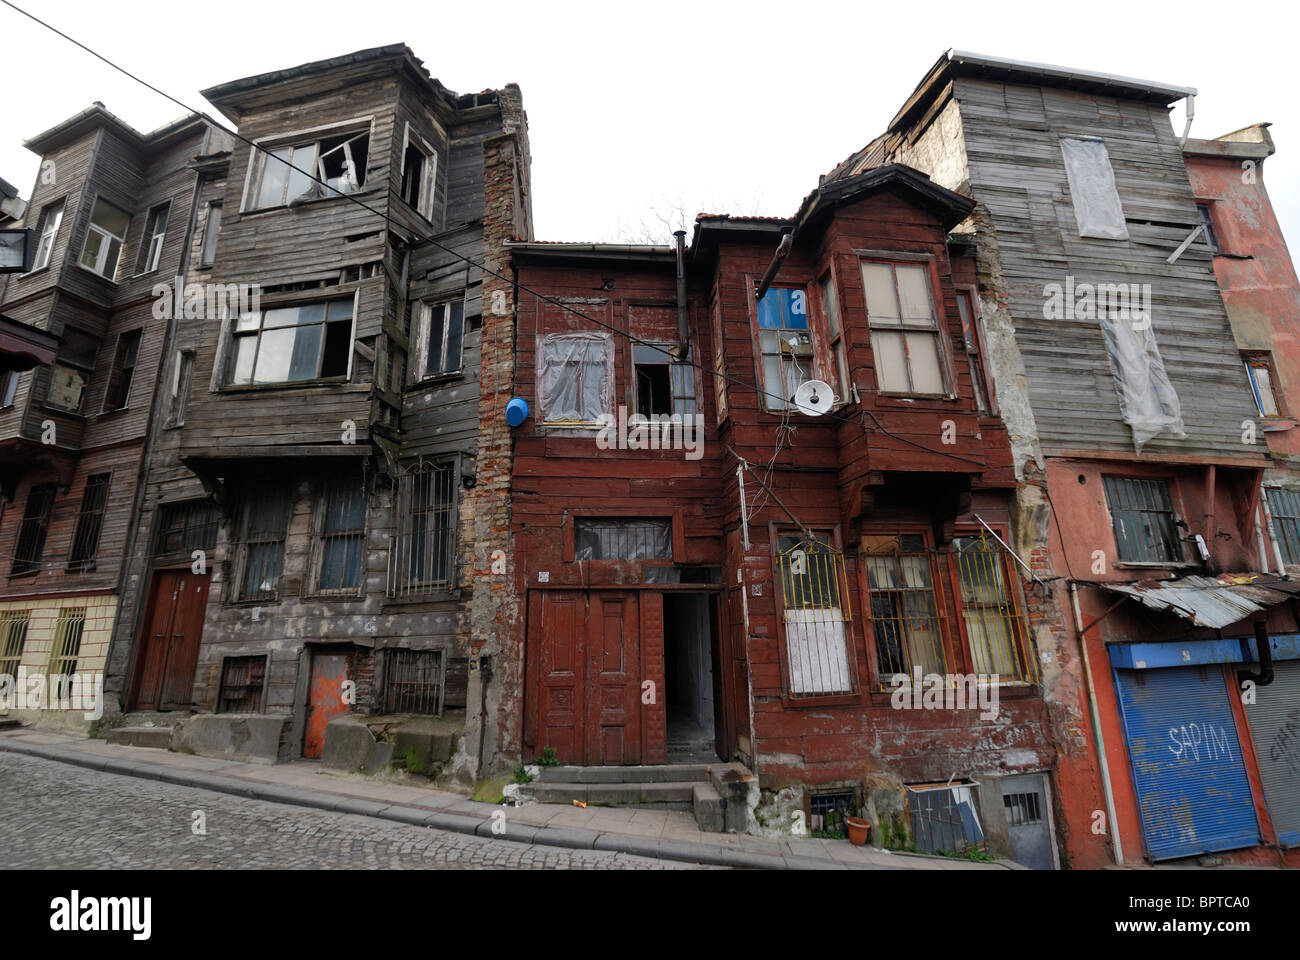 Istanbul. Turkey. Dilapidated Ottoman era wooden buildings in the Suleymaniye district. - Stock Image